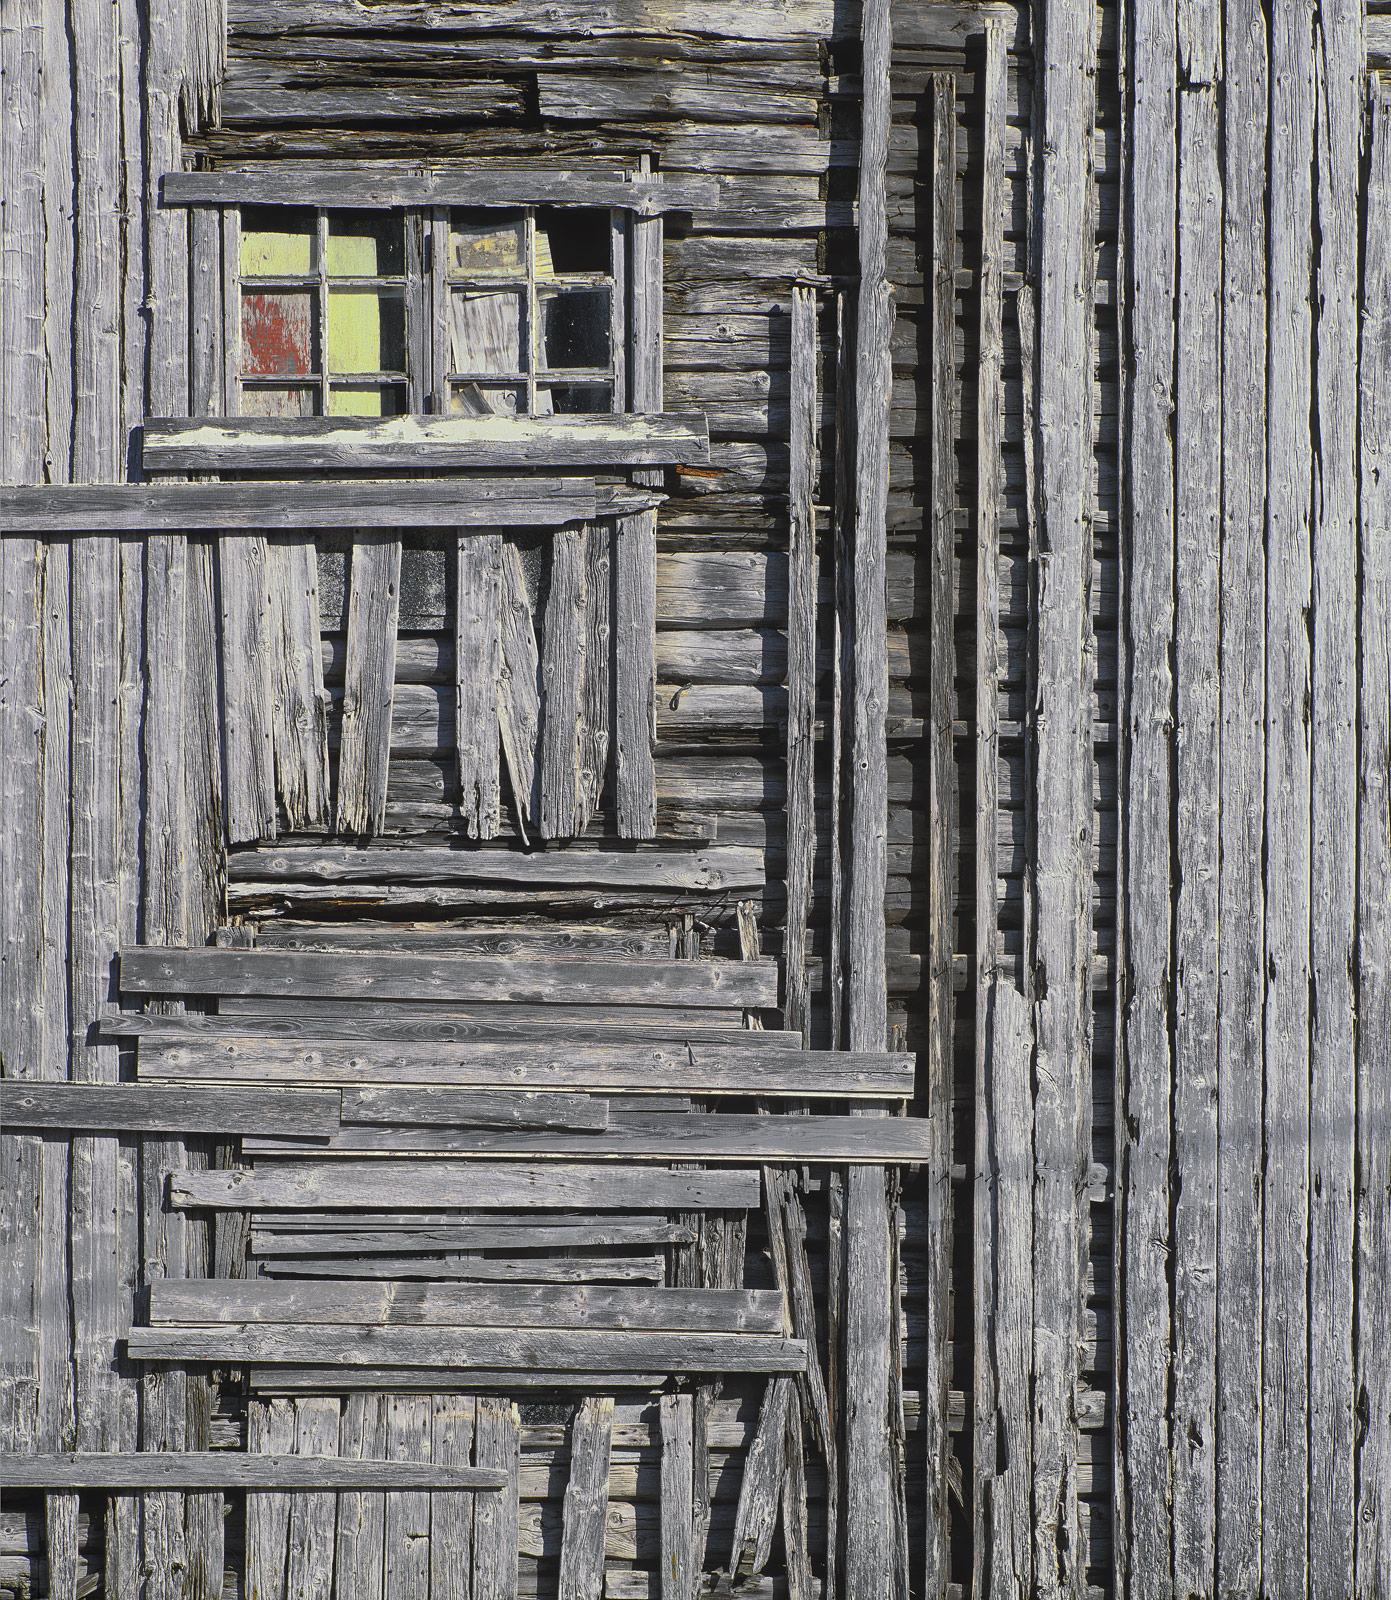 I just knew I was going to be pleased with this shot of a dilapidated timber barn on the edge of Vollen, the moment I saw it.&...